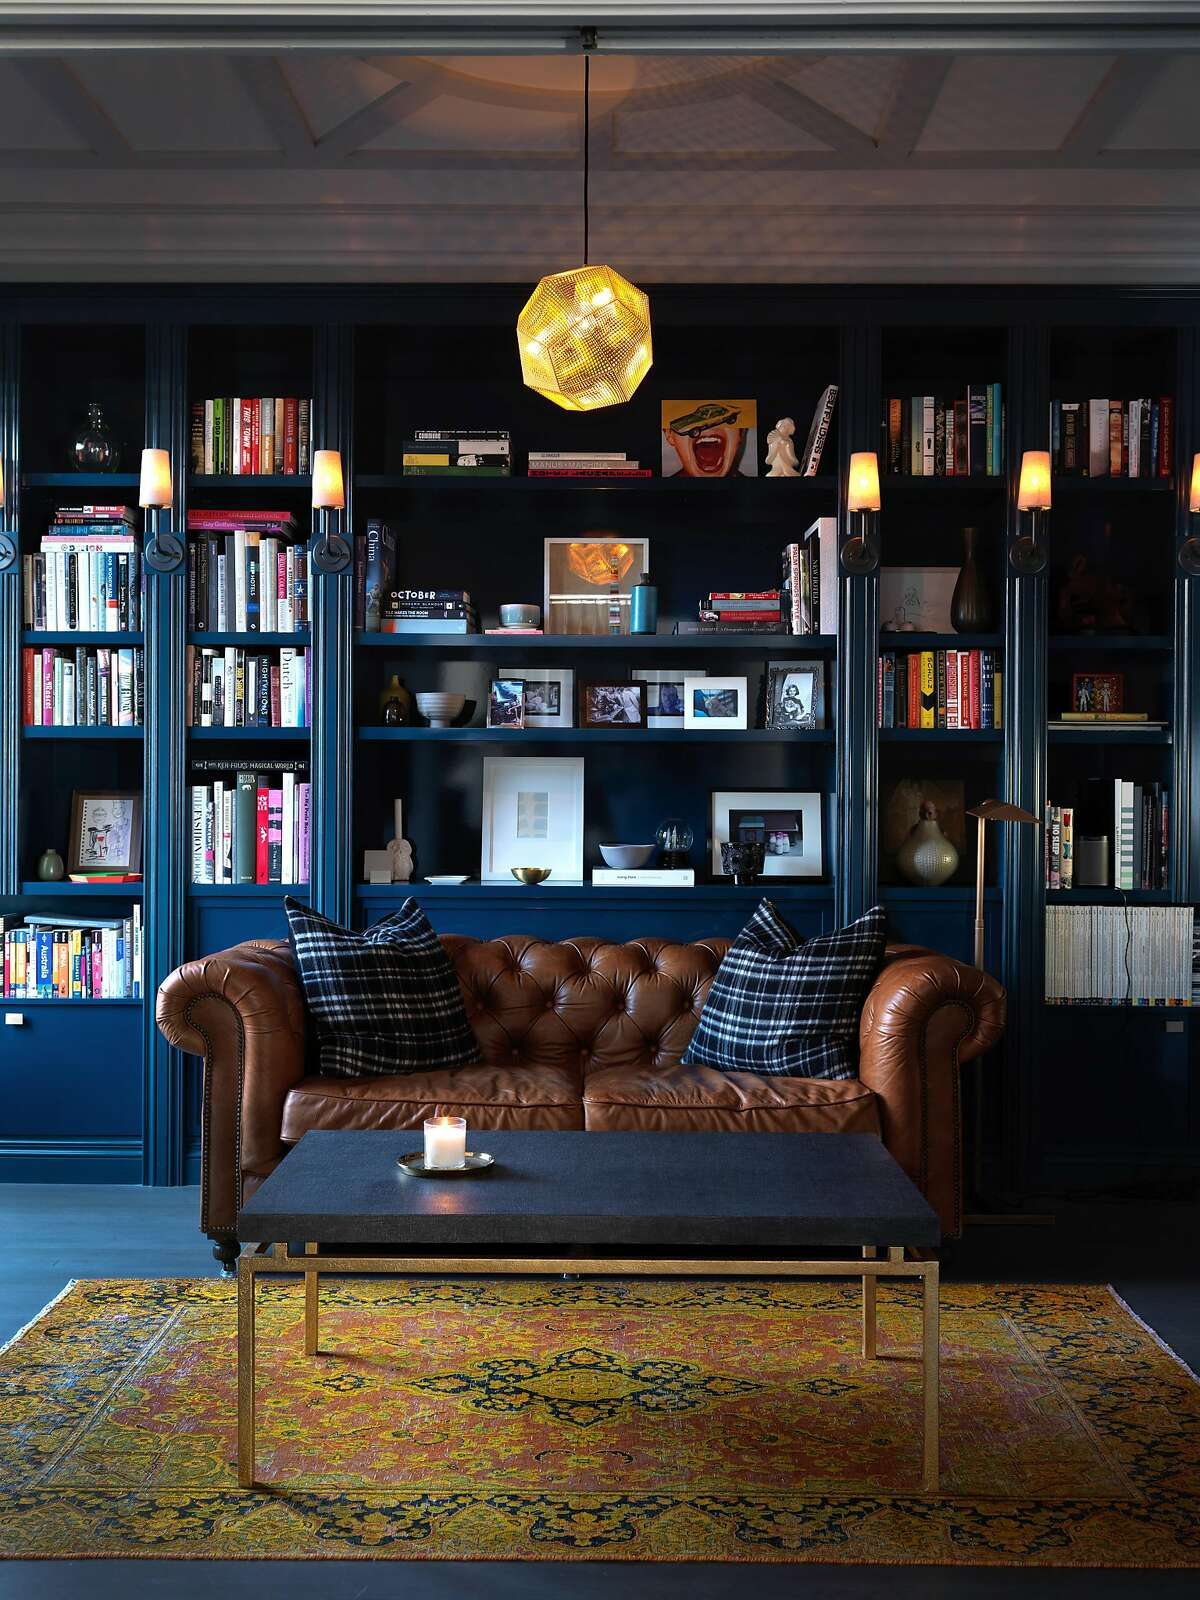 The library of a prewar apartment in Lower Nob Hill, owned by Daniel Maimin and Mark Savery, designed by Karen Curtiss of San Francisco�based Red Dot Studio.